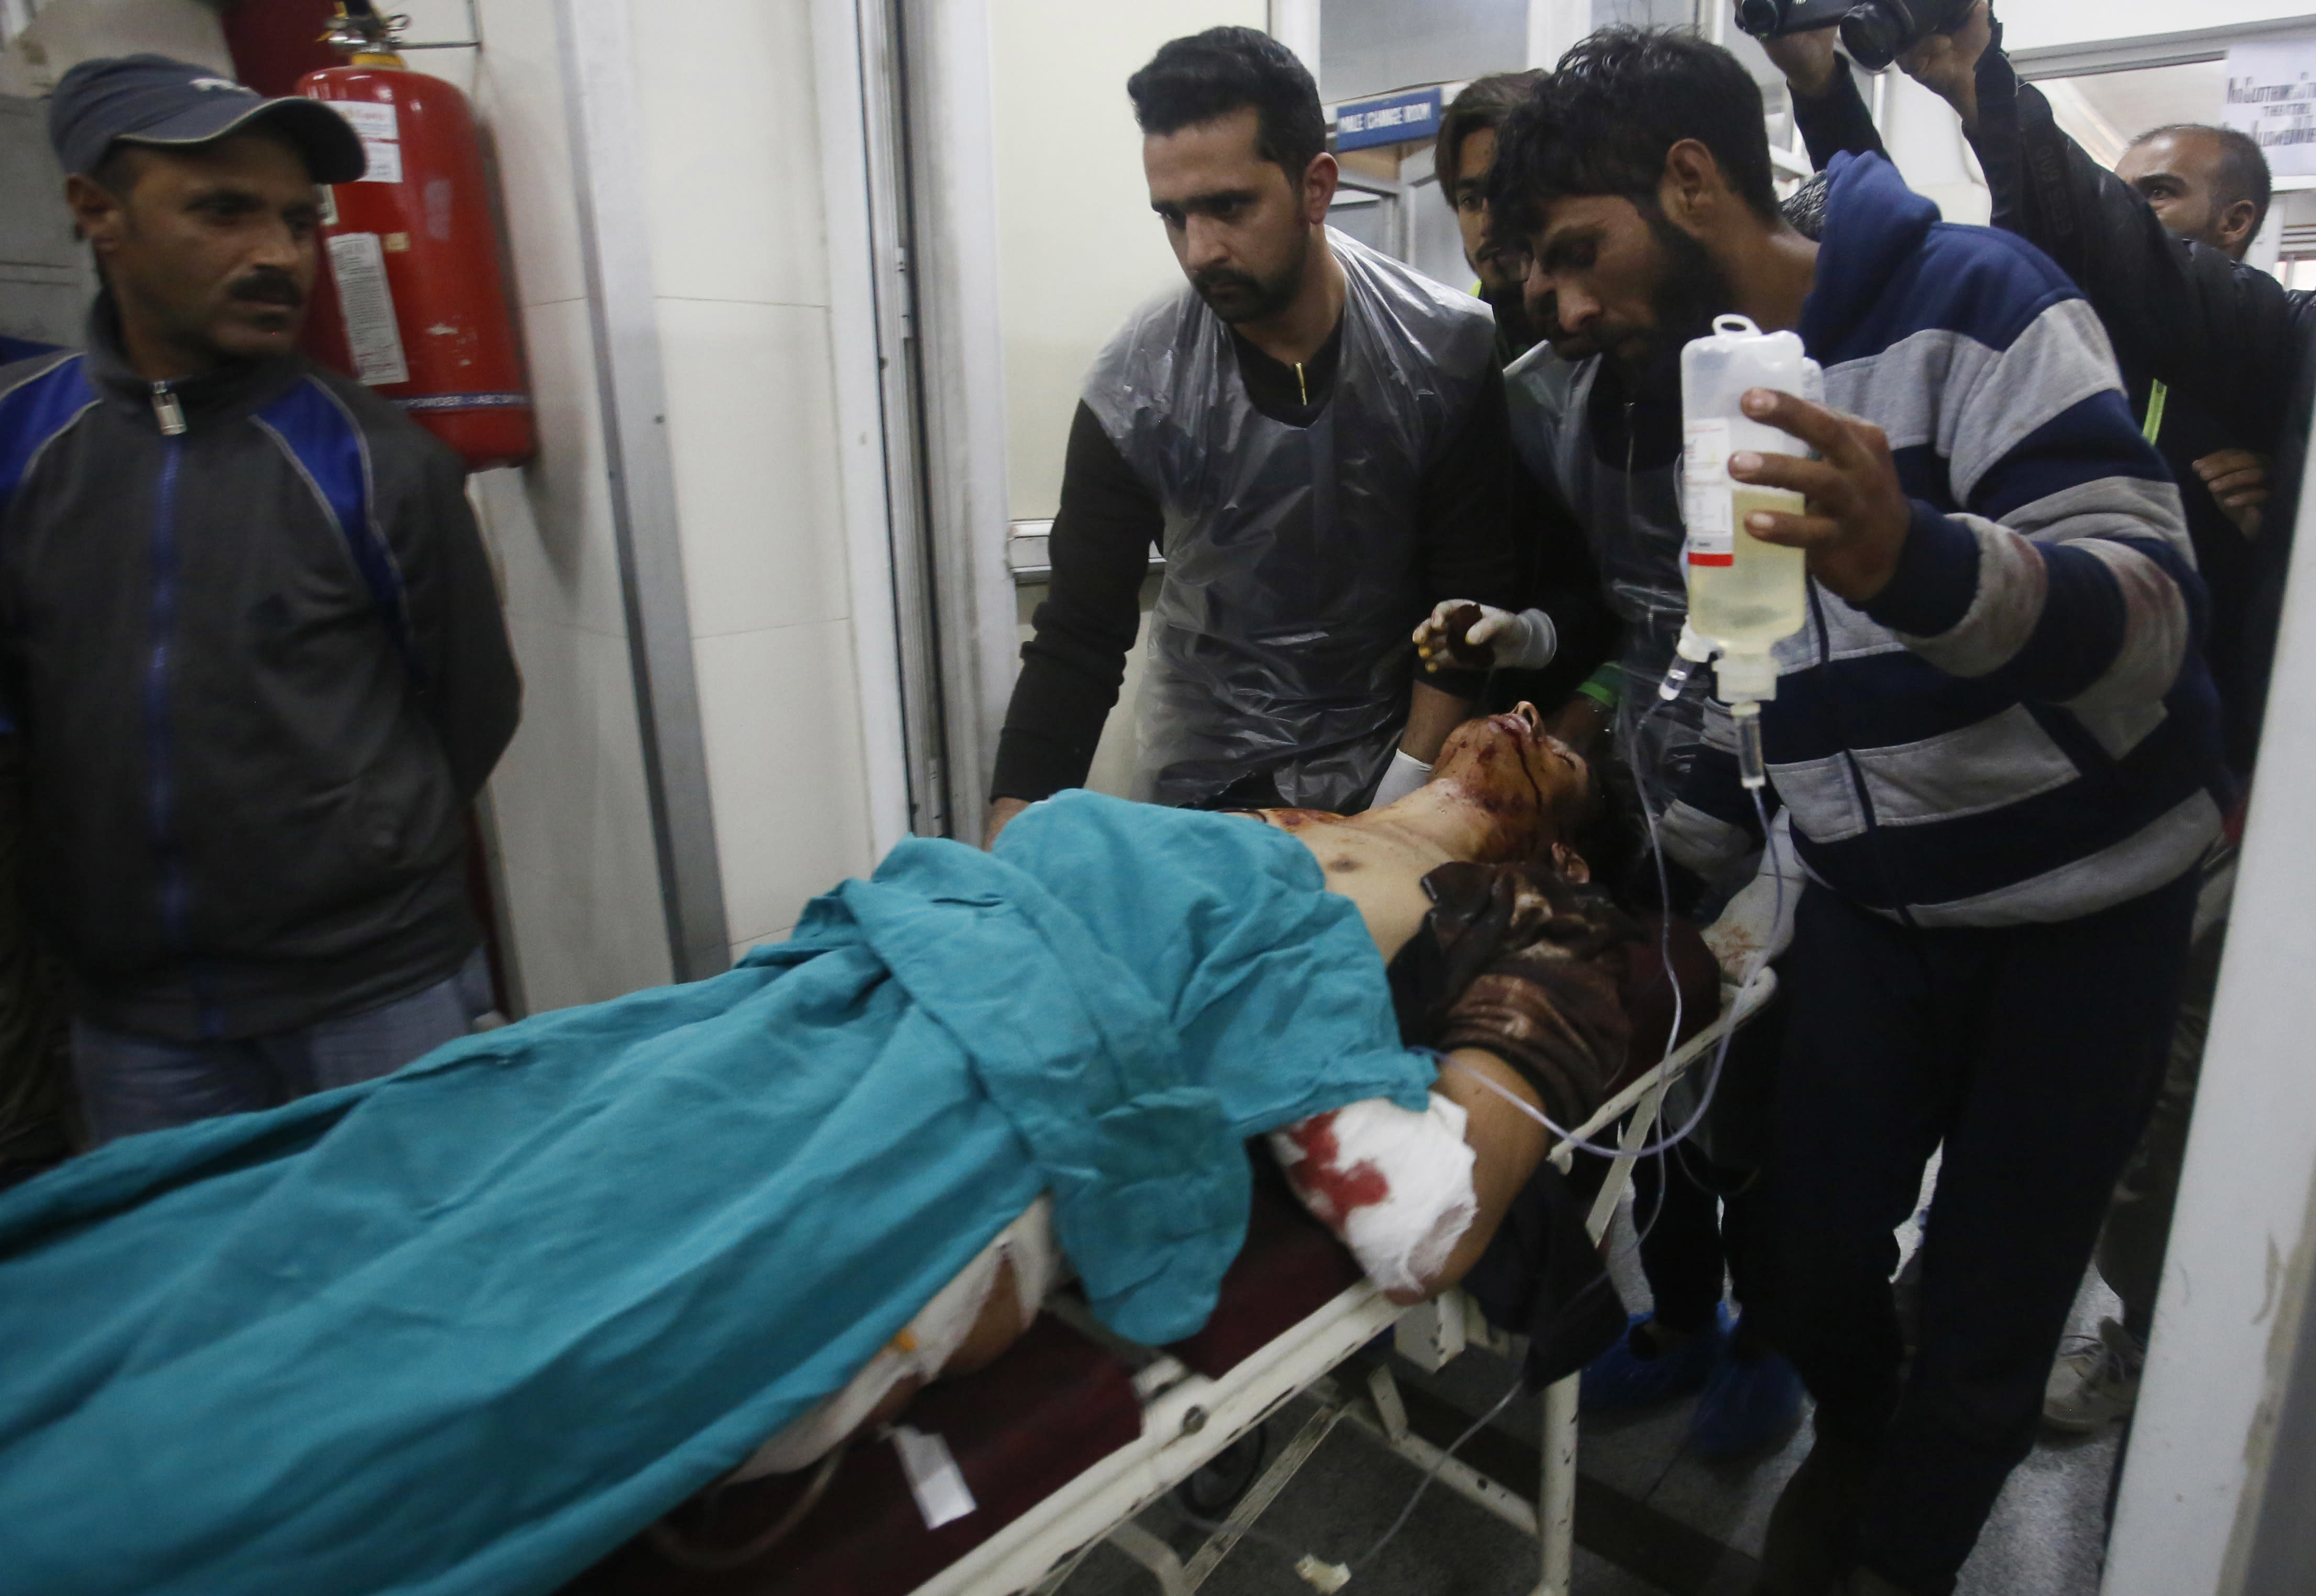 Kashmiri men take an injured civilian on a stretcher inside a hospital in Srinagar, Indian controlled Kashmir, Sunday, Oct. 21, 2018. Three suspected rebels were killed in a gun battle with Indian government forces in disputed Kashmir on Sunday, and at least three civilians were killed in an explosion at the site after the fighting was over, officials and residents said. (AP Photo/Mukhtar Khan)